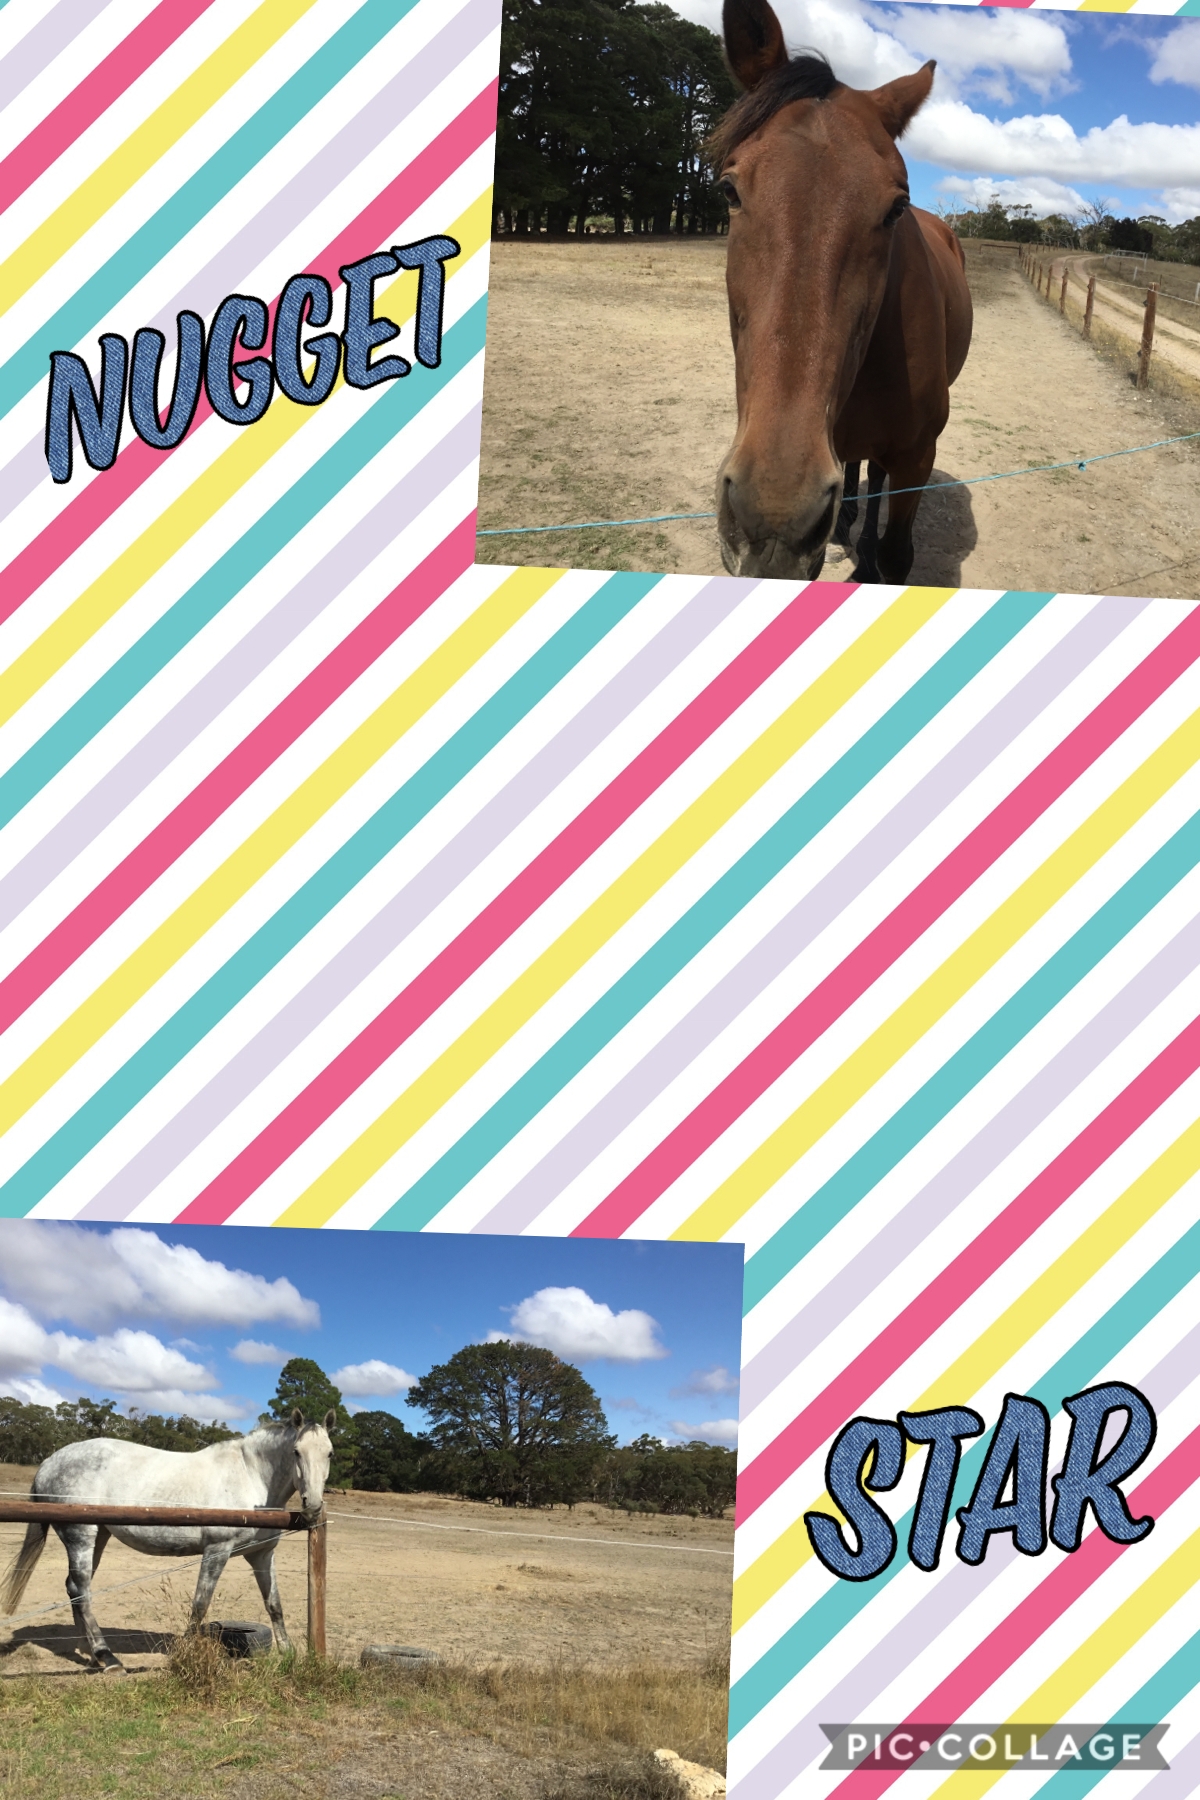 Nugget and Star